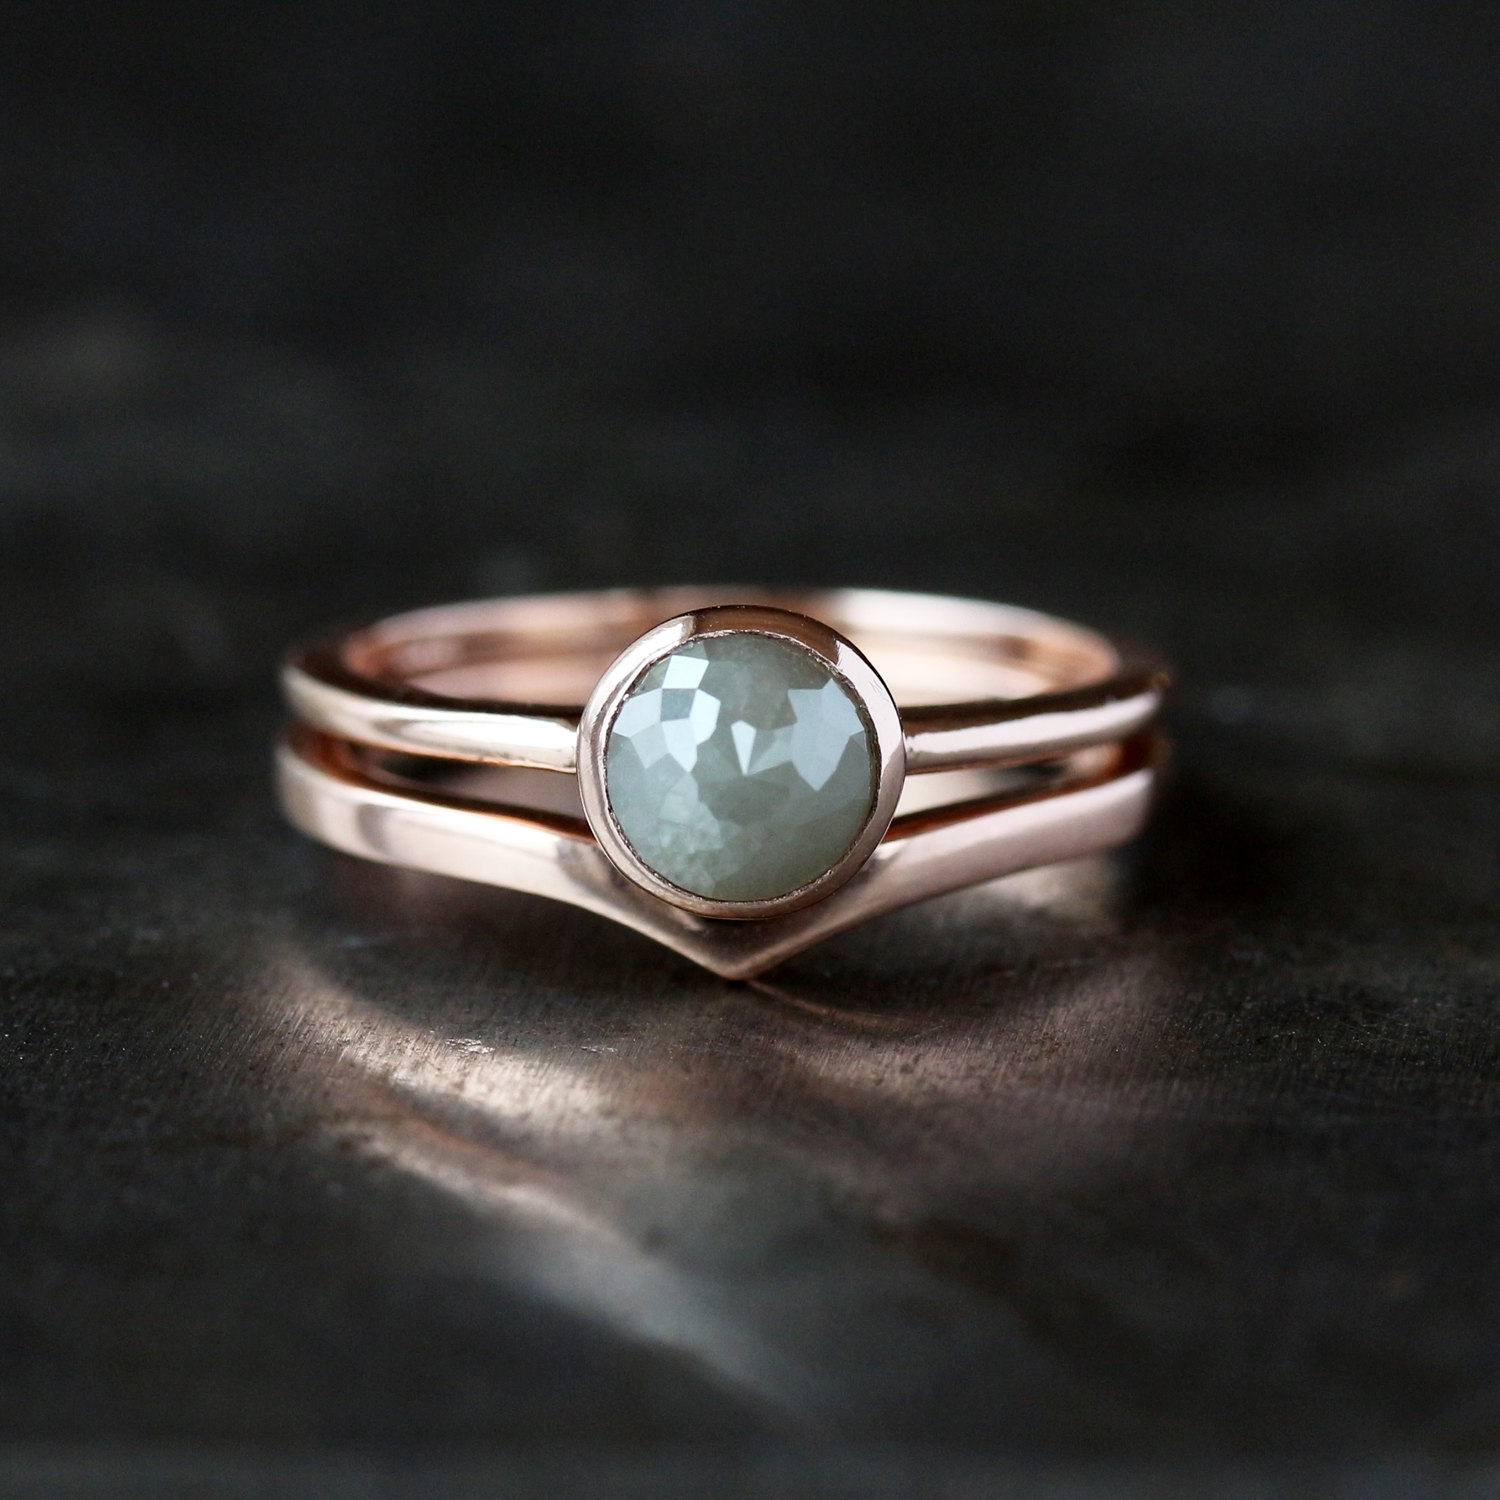 Chevron Wedding Band, 14k Rose Gold Wedding Ring, Contour Band For Current Chevron Emerald Rings (View 6 of 15)